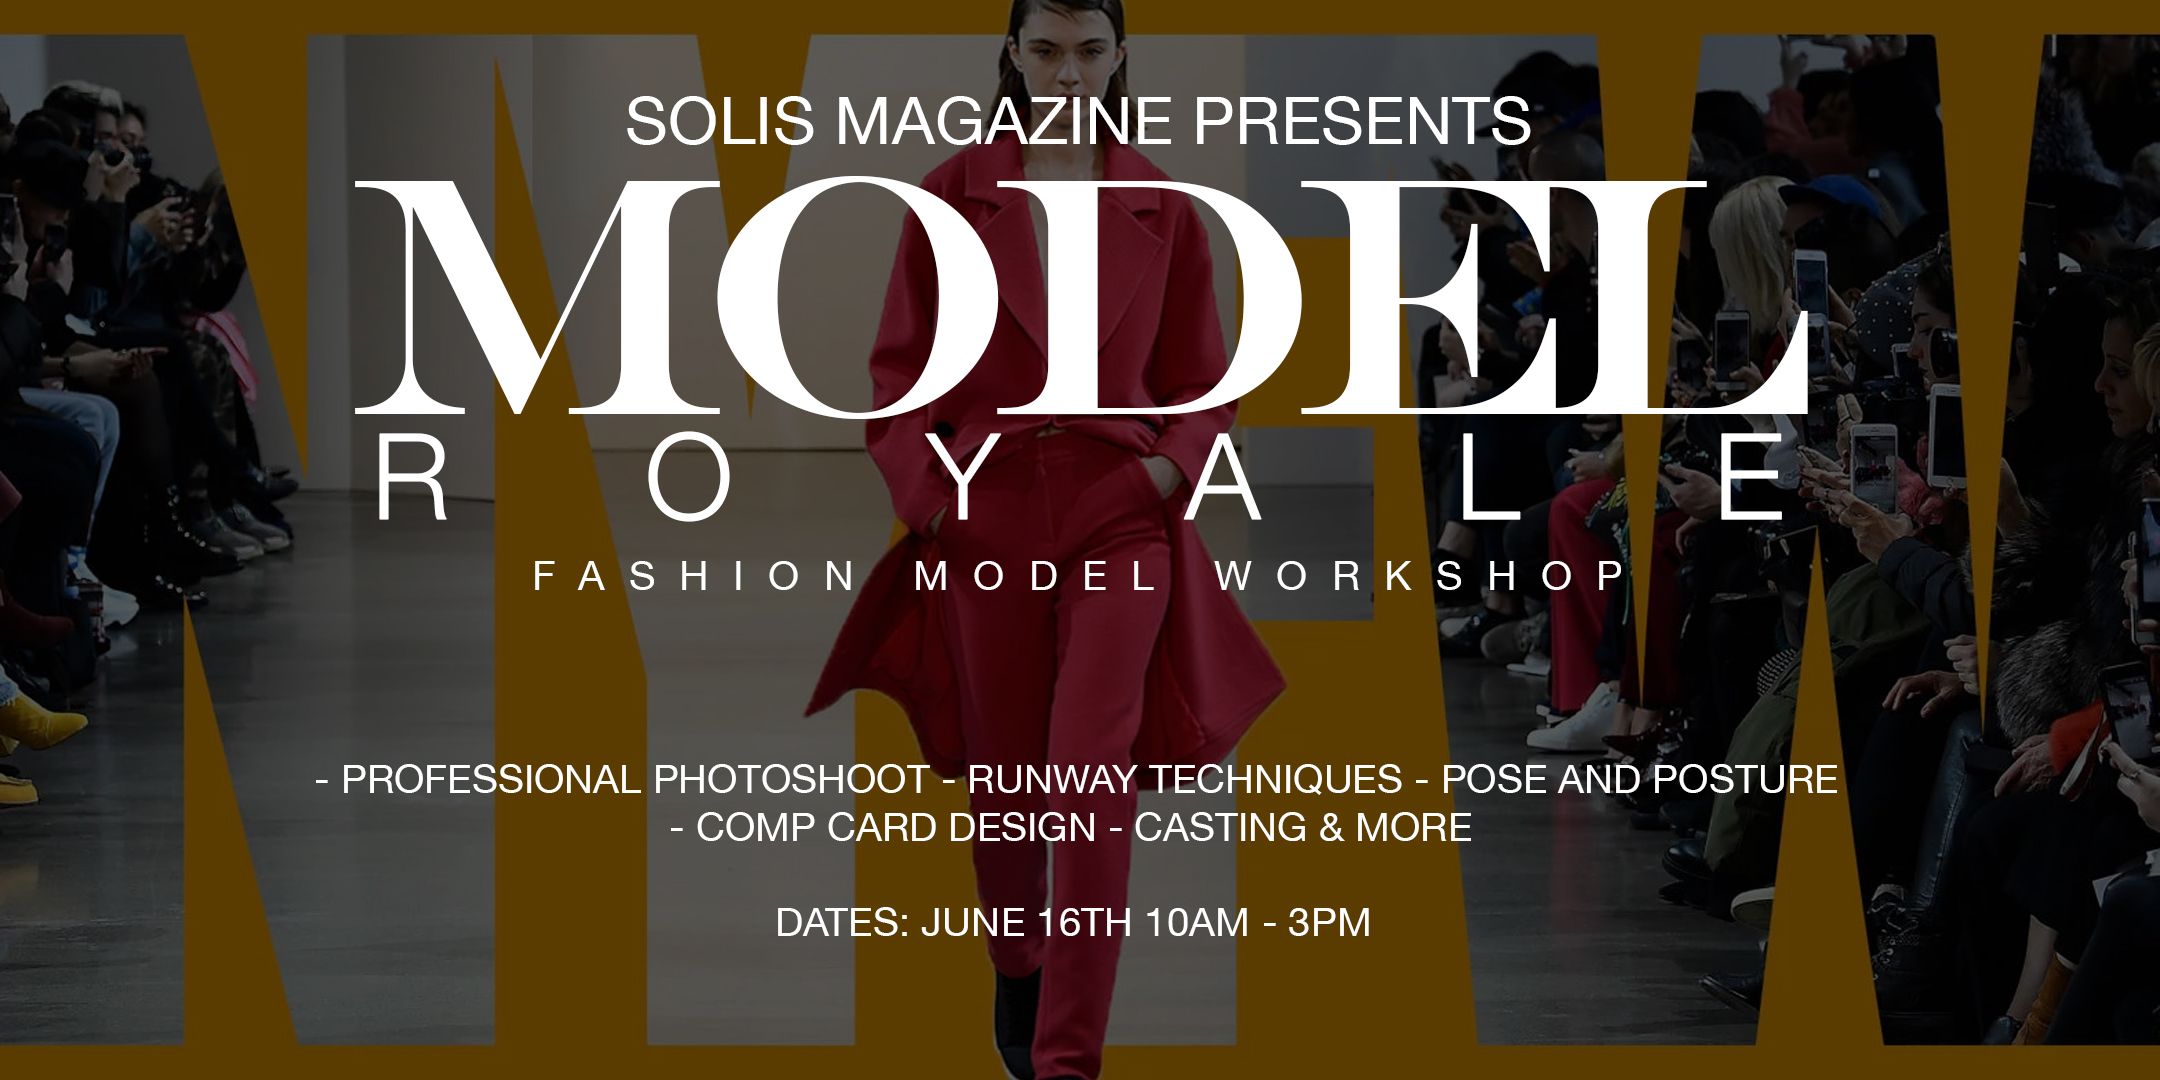 NYFW - Fashion Model Workshop